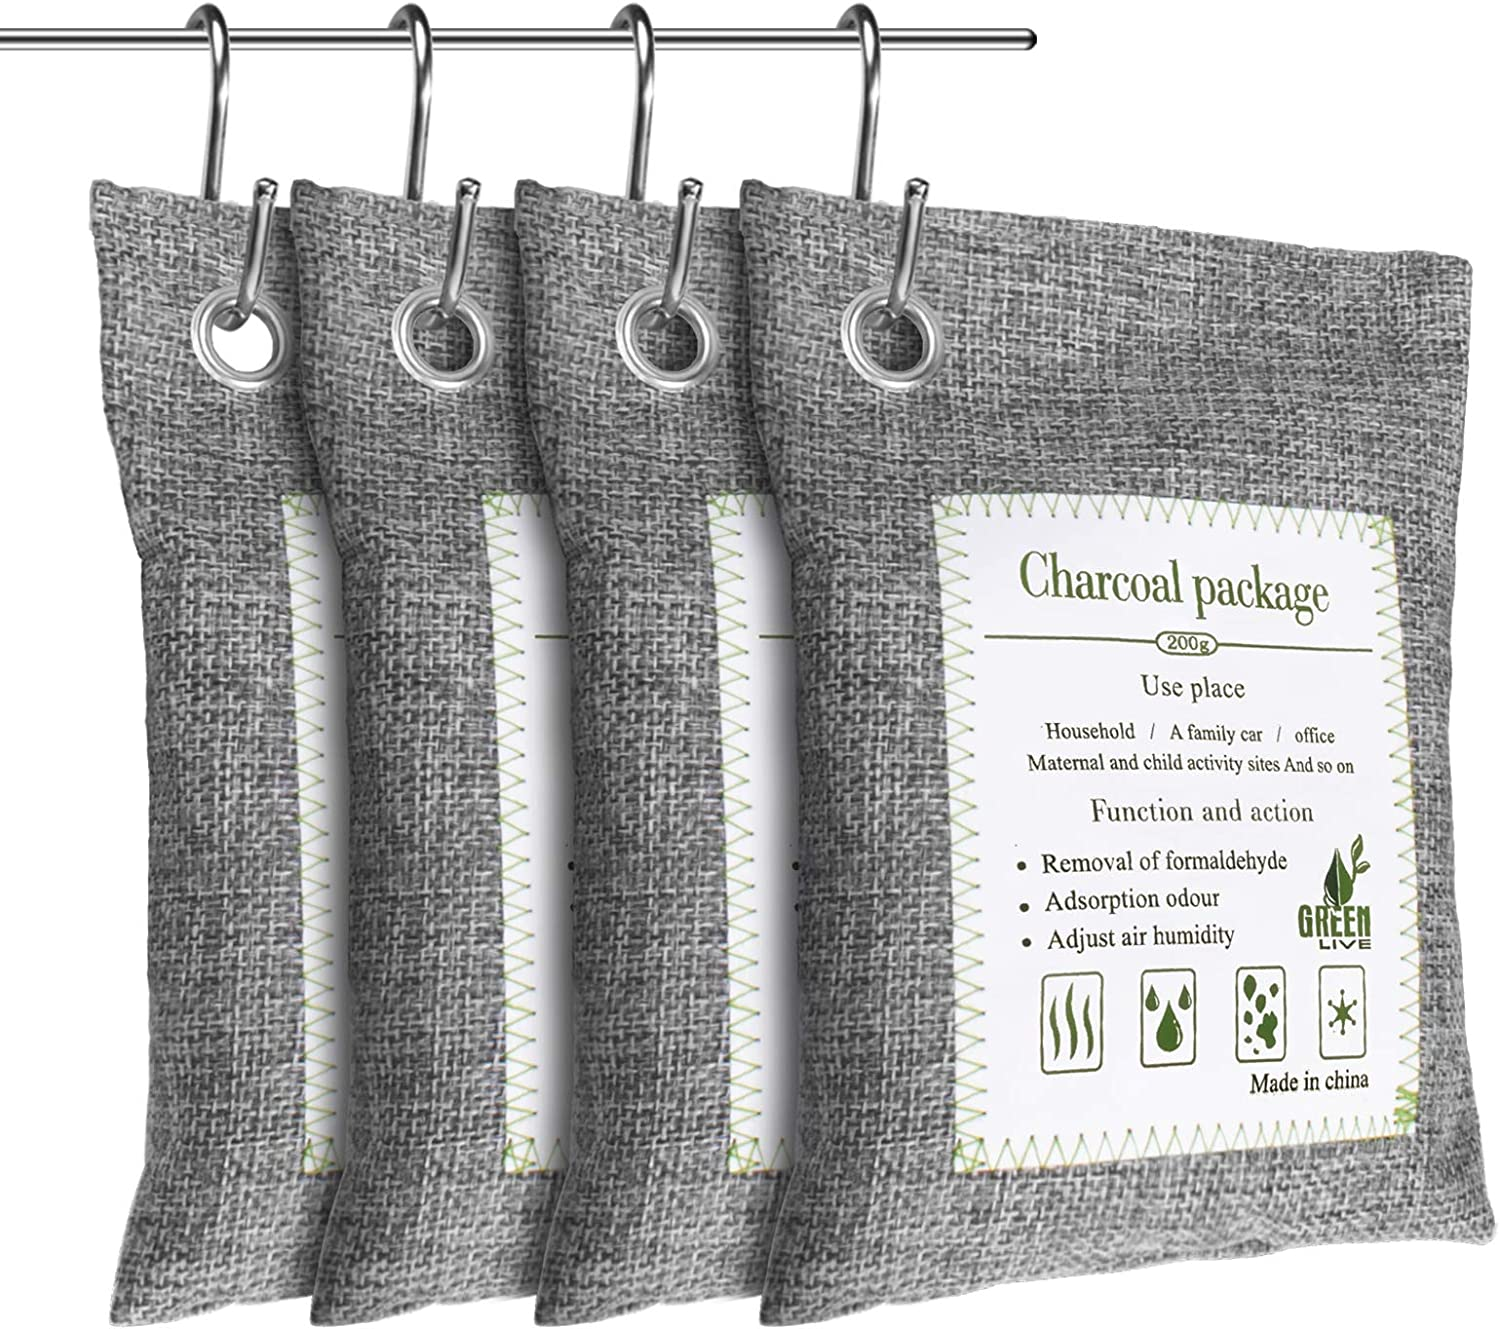 Dioxide Bamboo Charcoal Discount is also underway Air Choice Pack 4 Bag Purifying